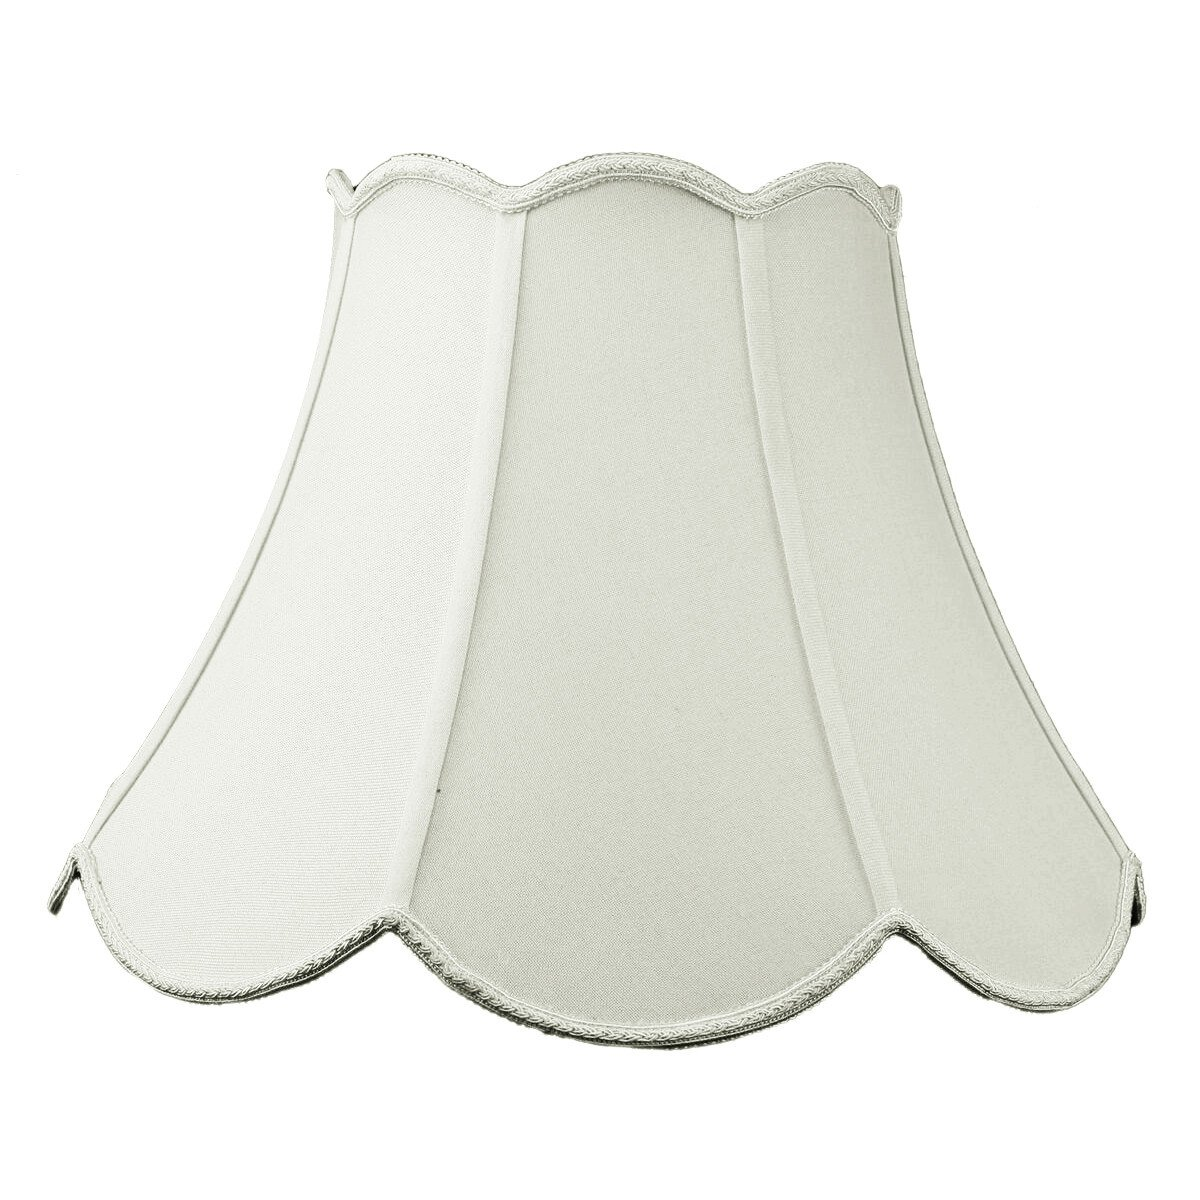 9x18x13 Scalloped Bell Lampshade Premium Light Oatmeal Linen with Brass Spider fitter By Home Concept - Perfect for table and floor lamps - Large